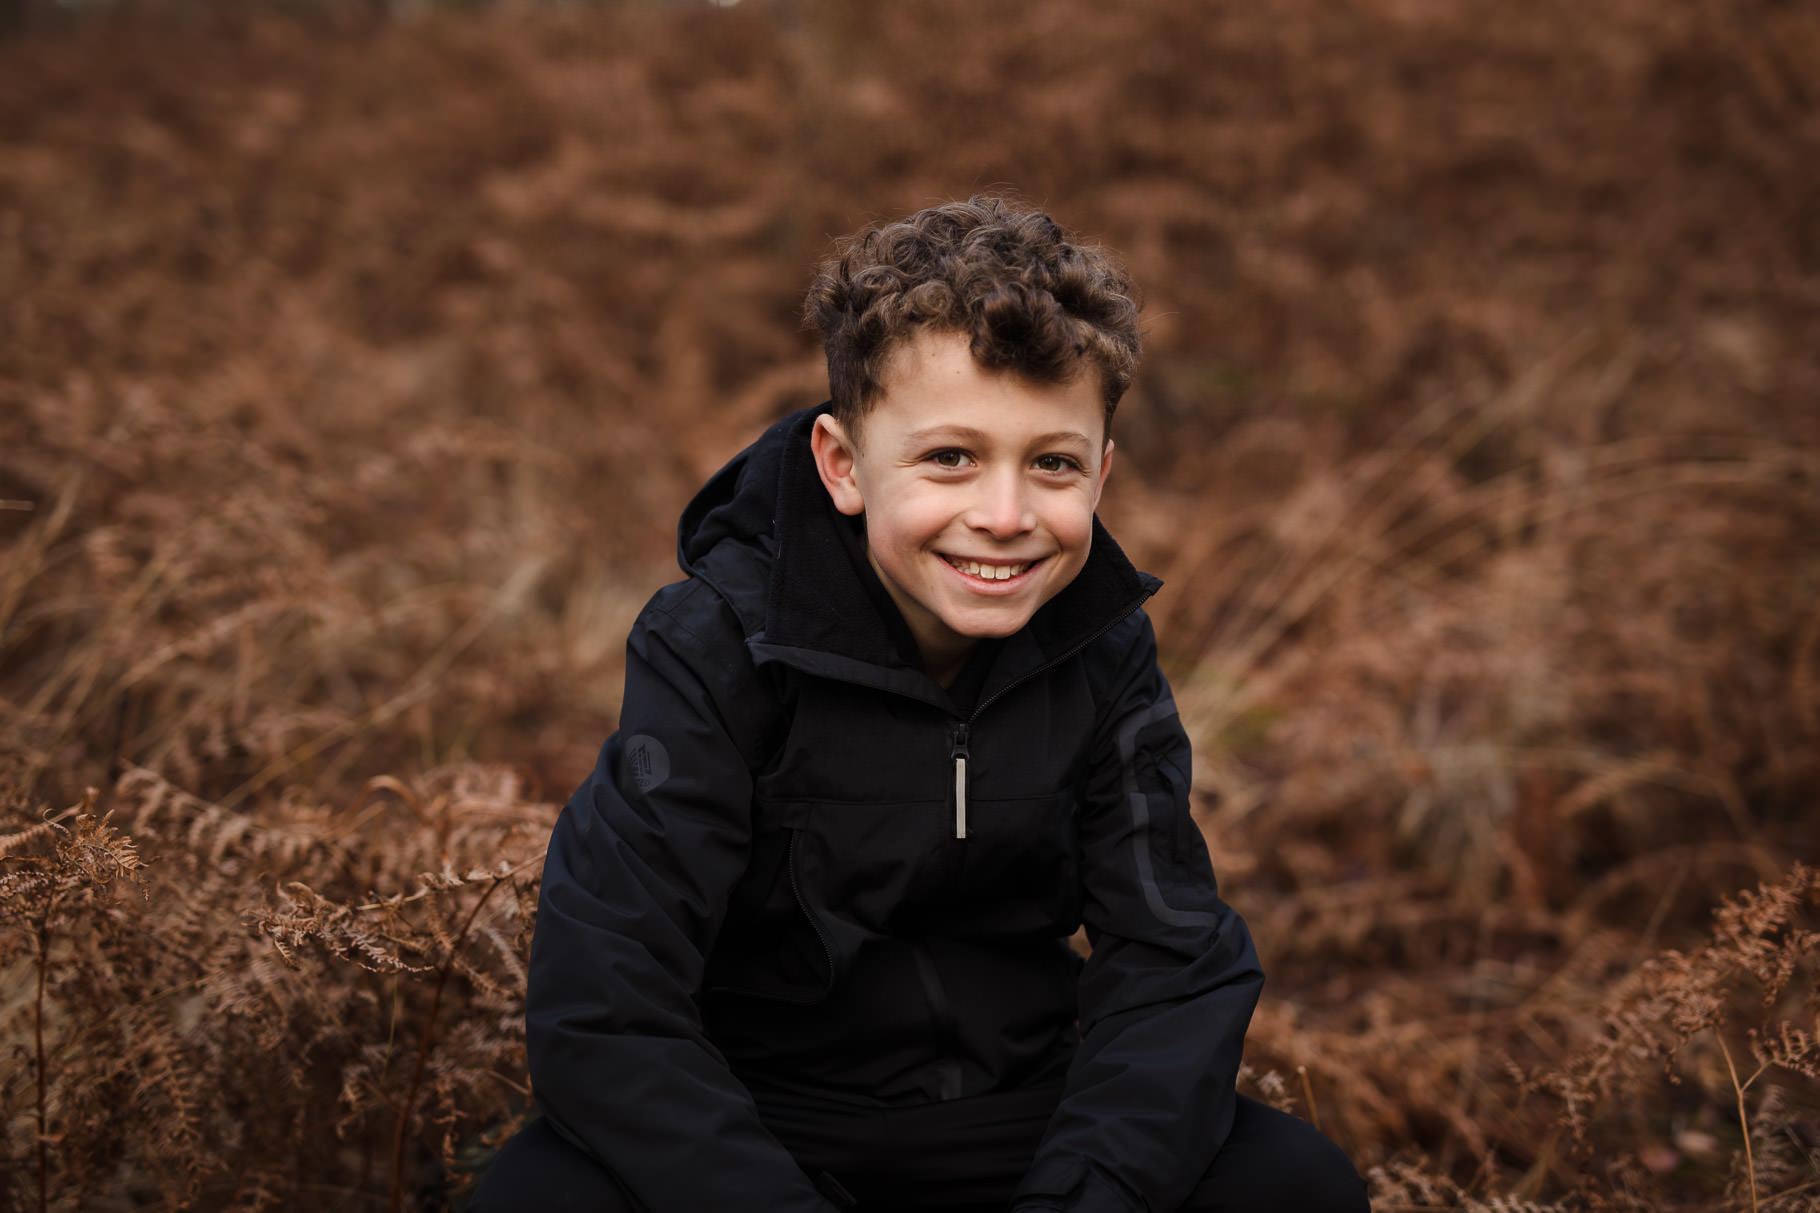 Boy with curly hair sitting in ferns at Moors Valley Country Park Bournemouth